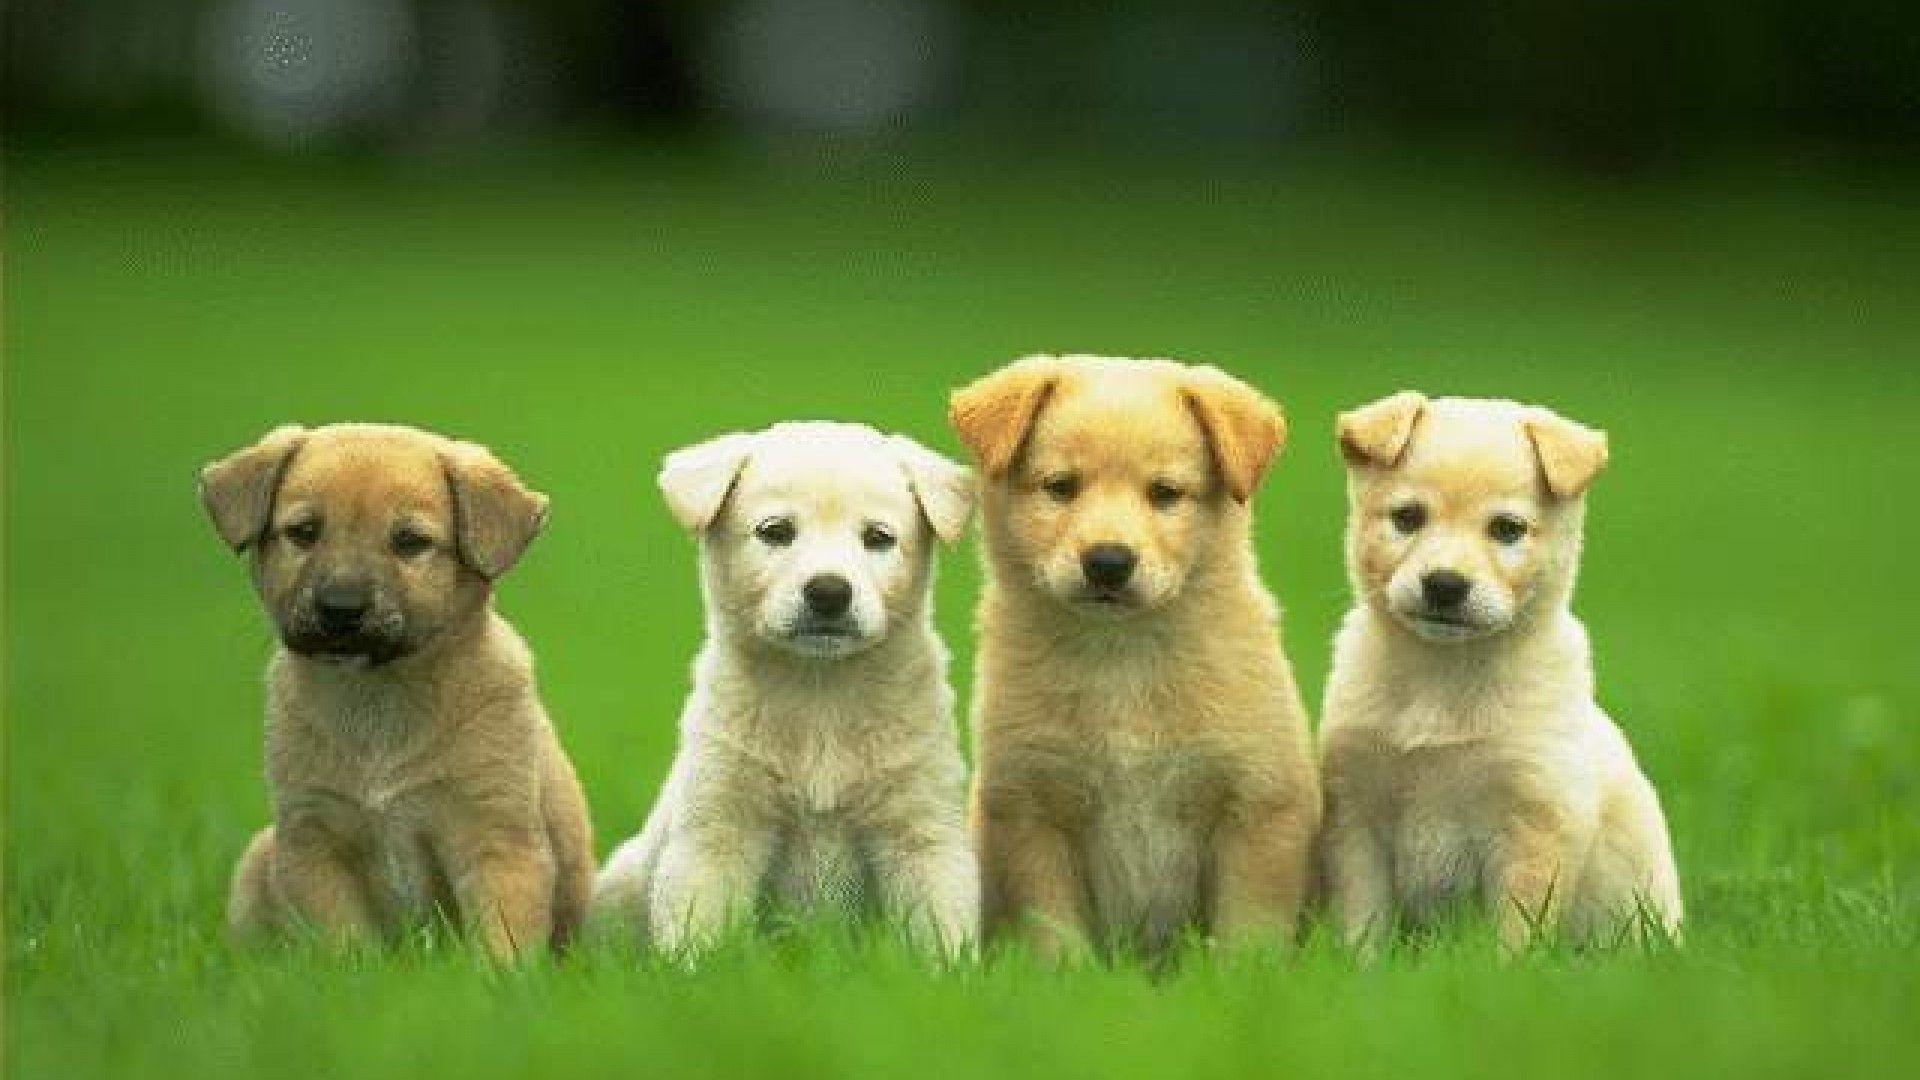 puppies dogs wallpapers dog animal funny cave